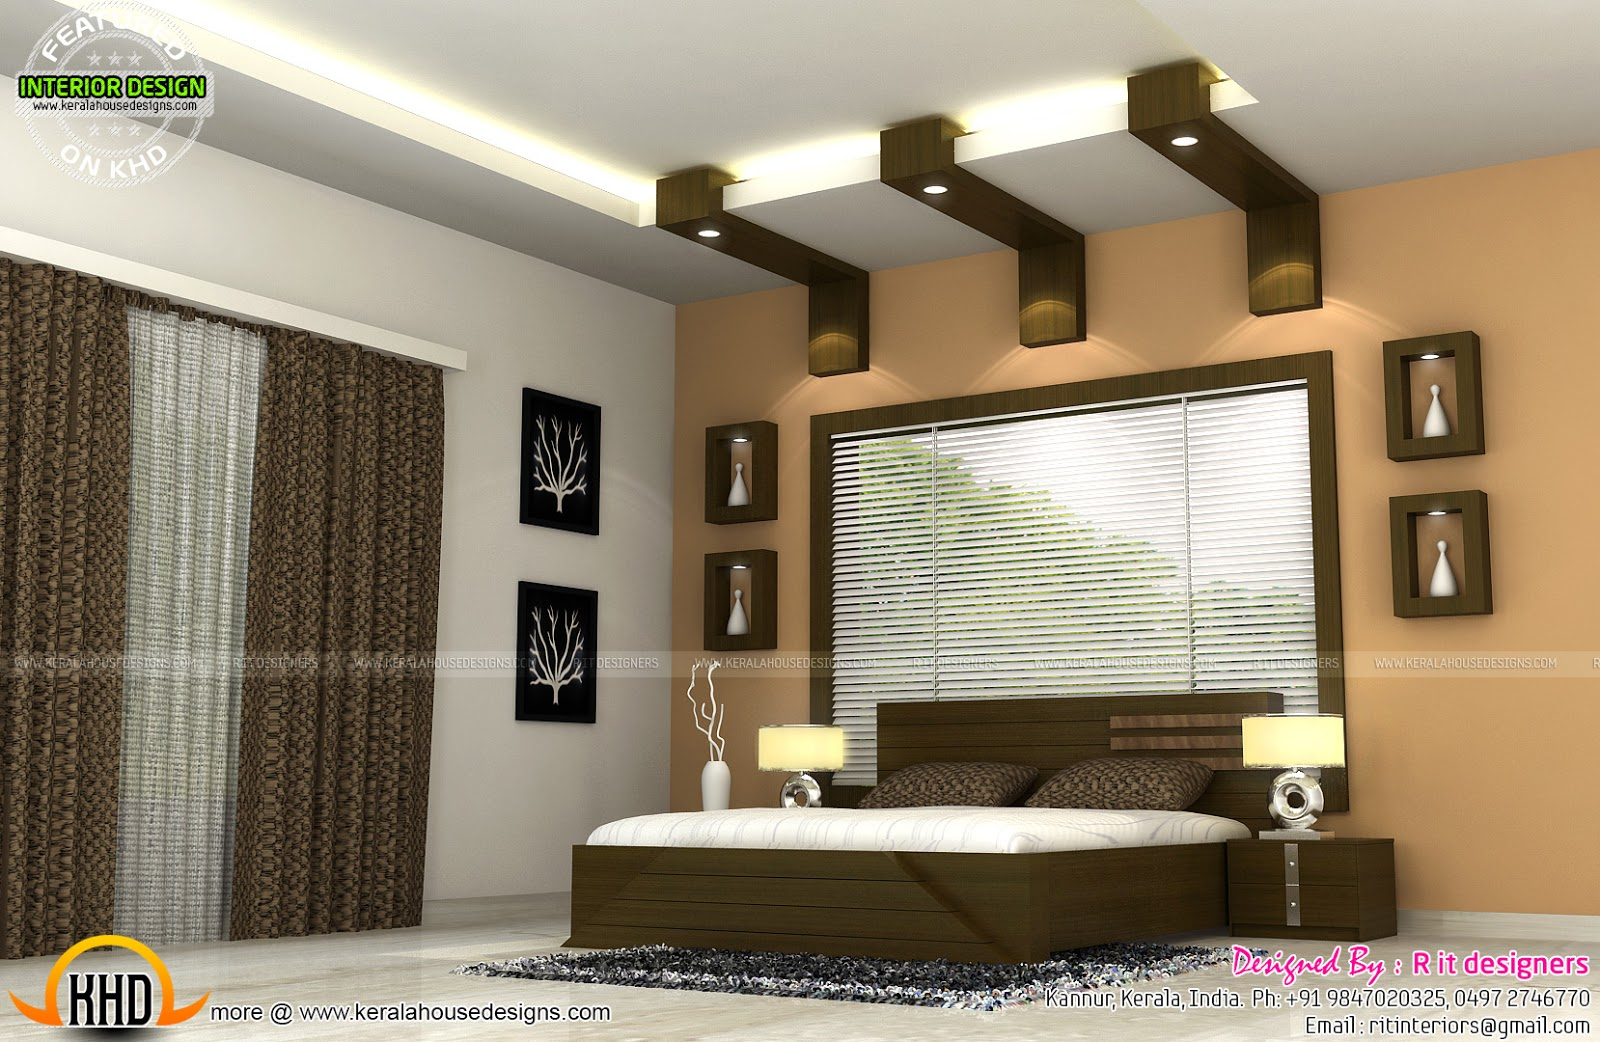 Interiors of bedrooms and kitchen kerala home design and for Design my bedroom layout